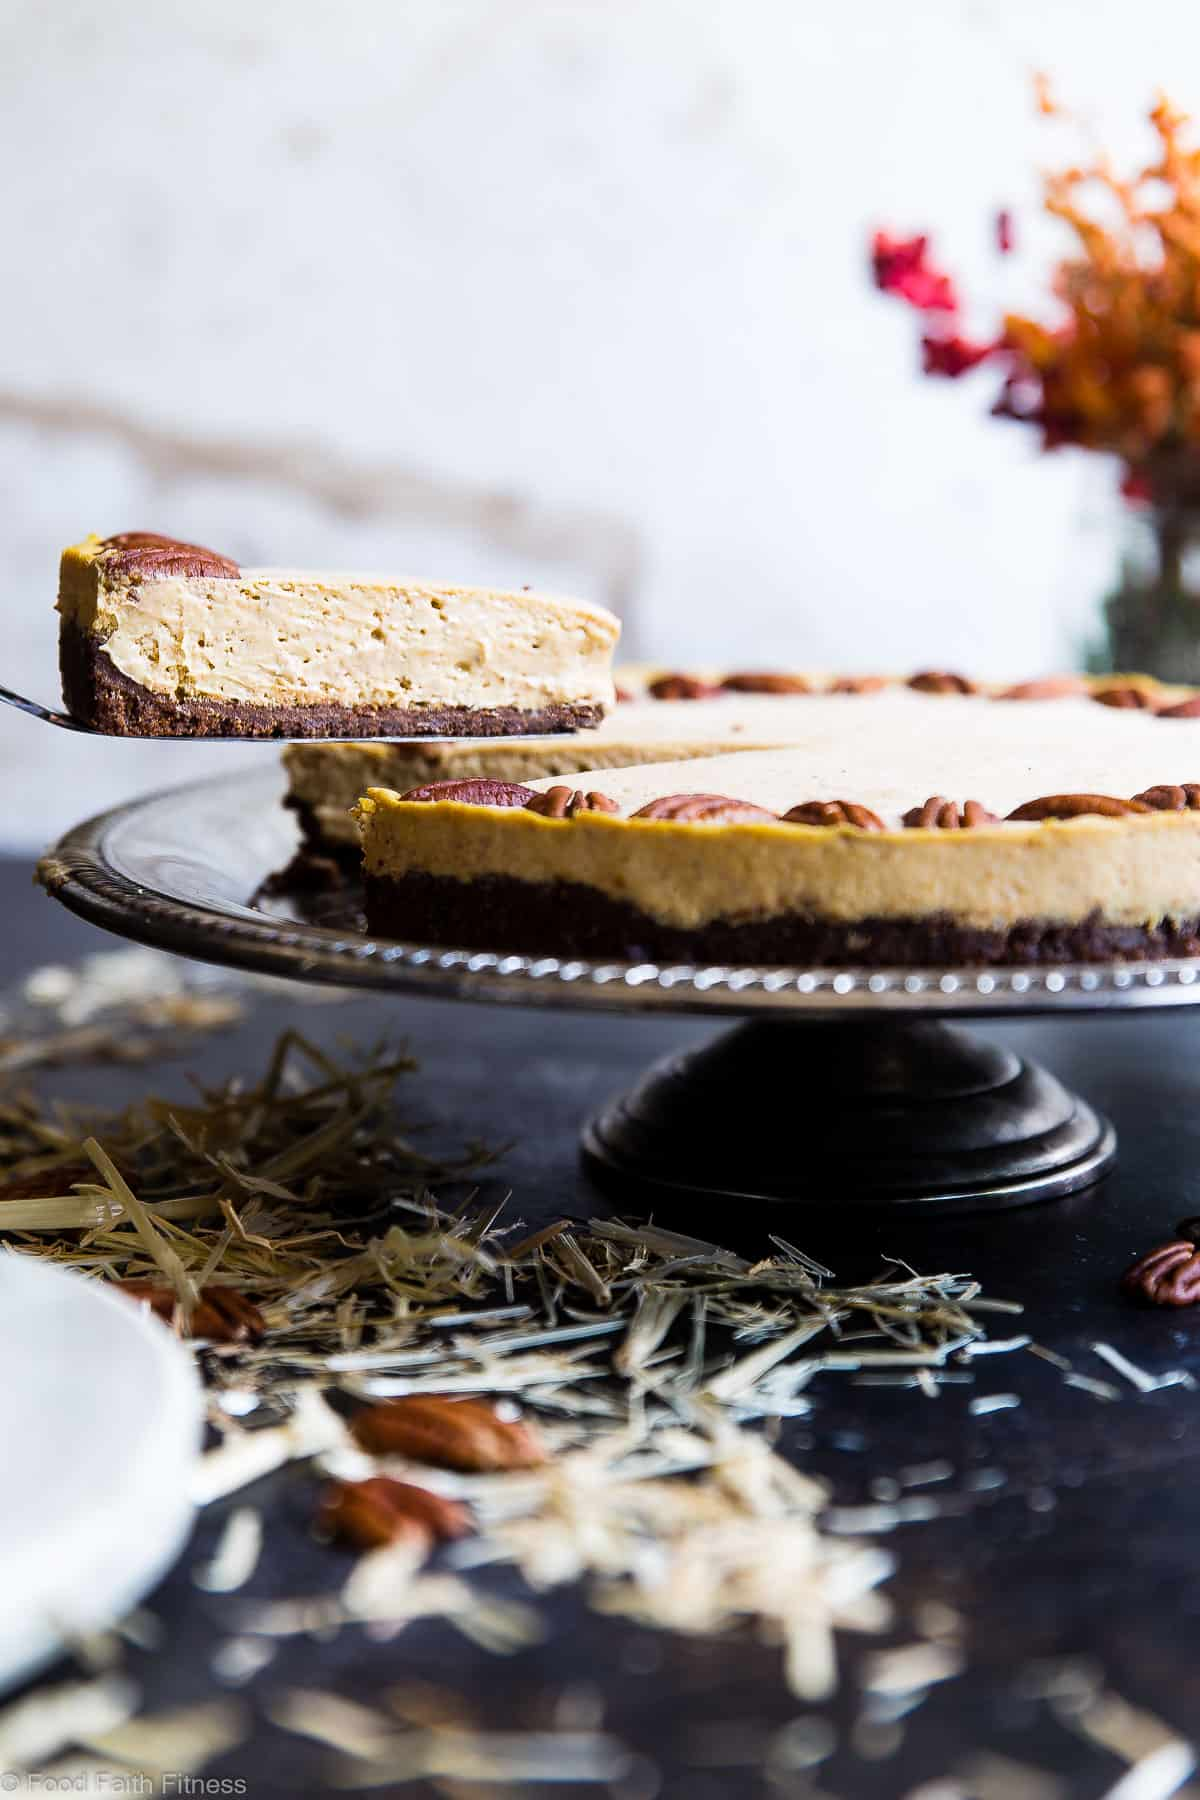 Low Carb Keto Pumpkin Cheesecake - This healthy low carb pumpkin cheesecake is SO creamy and spicy-sweet you will never believe it's gluten, grain and sugar free and only 240 calories! The BEST fall dessert ever! | #Foodfaithfitness | #Glutenfree #Keto #Lowcarb #Pumpkin #Sugarfree